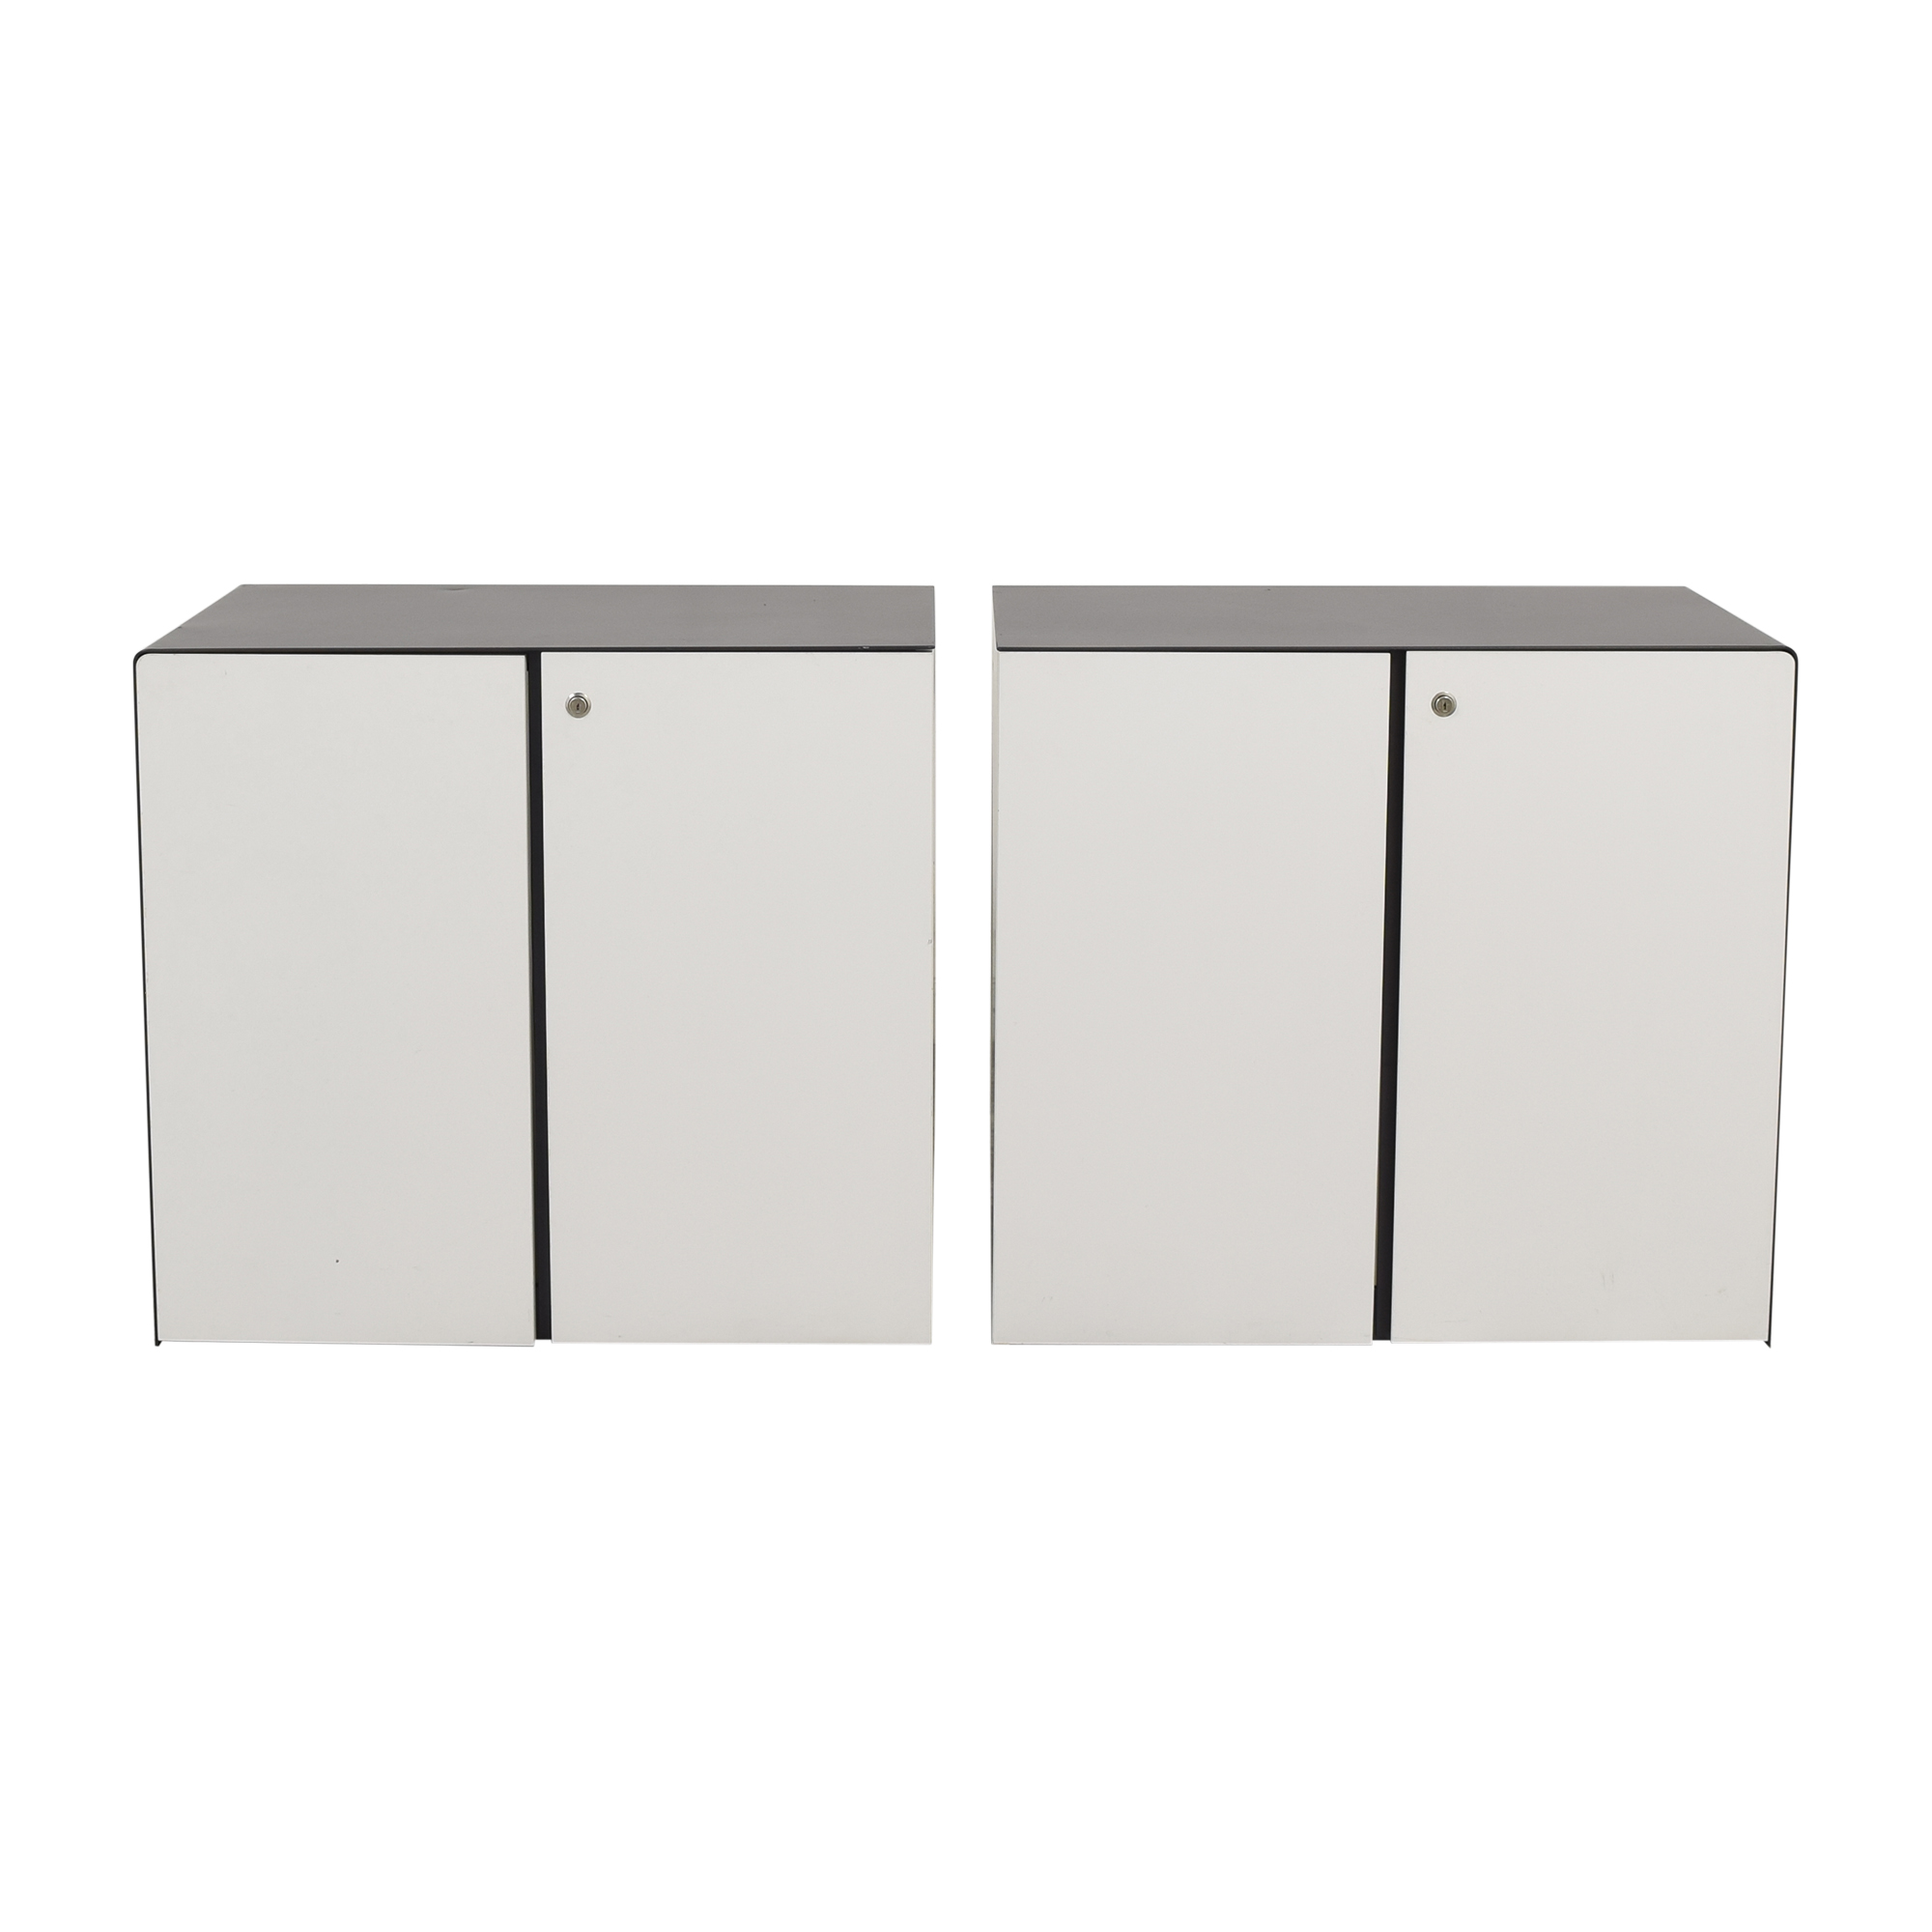 Koleksiyon Song S2 Small Storage Cabinets / Cabinets & Sideboards